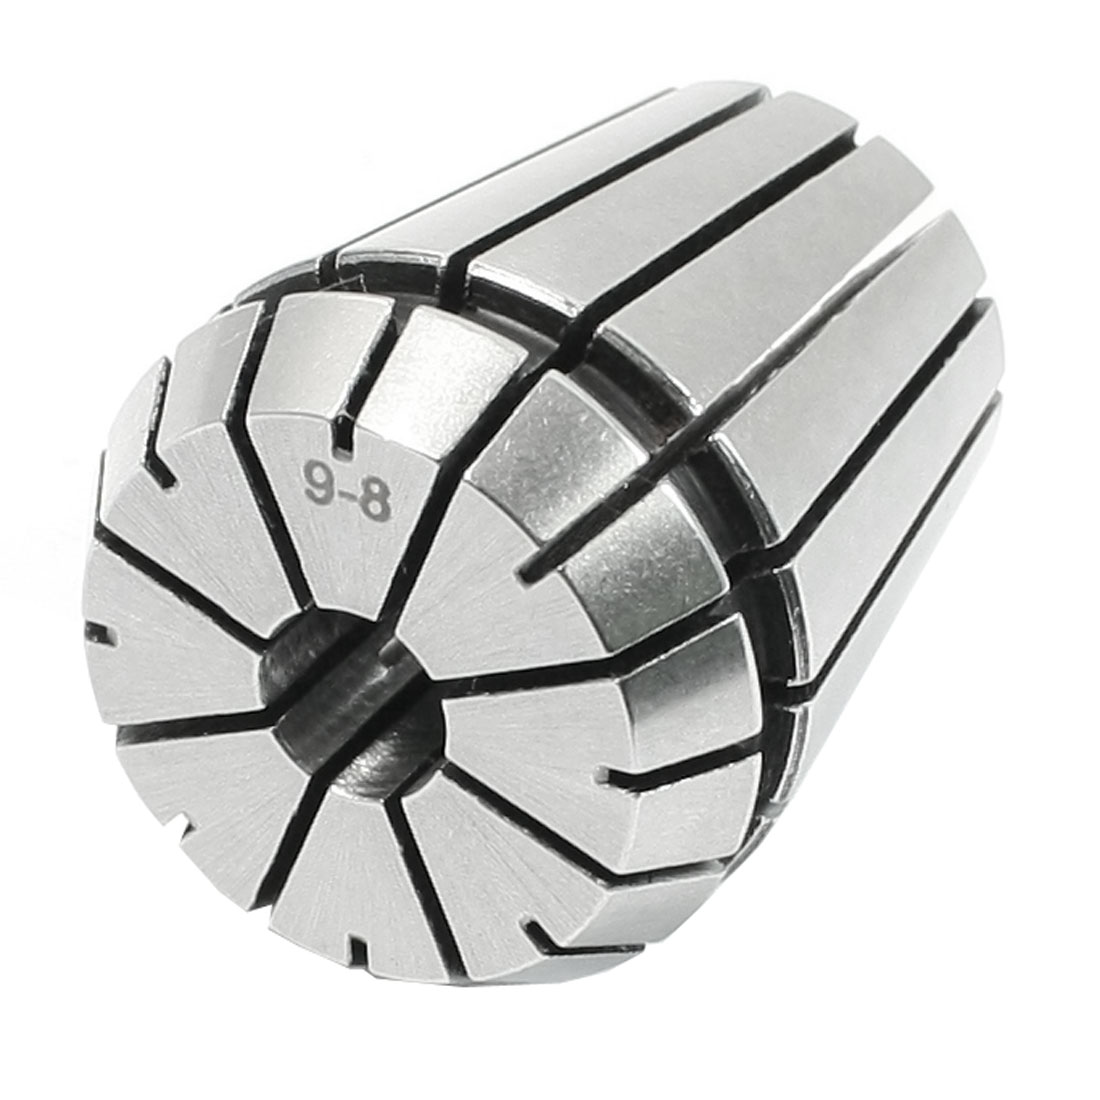 Clamping Range 9-8mm ER32 Precision Spring Collet Tapping Part Silver Tone